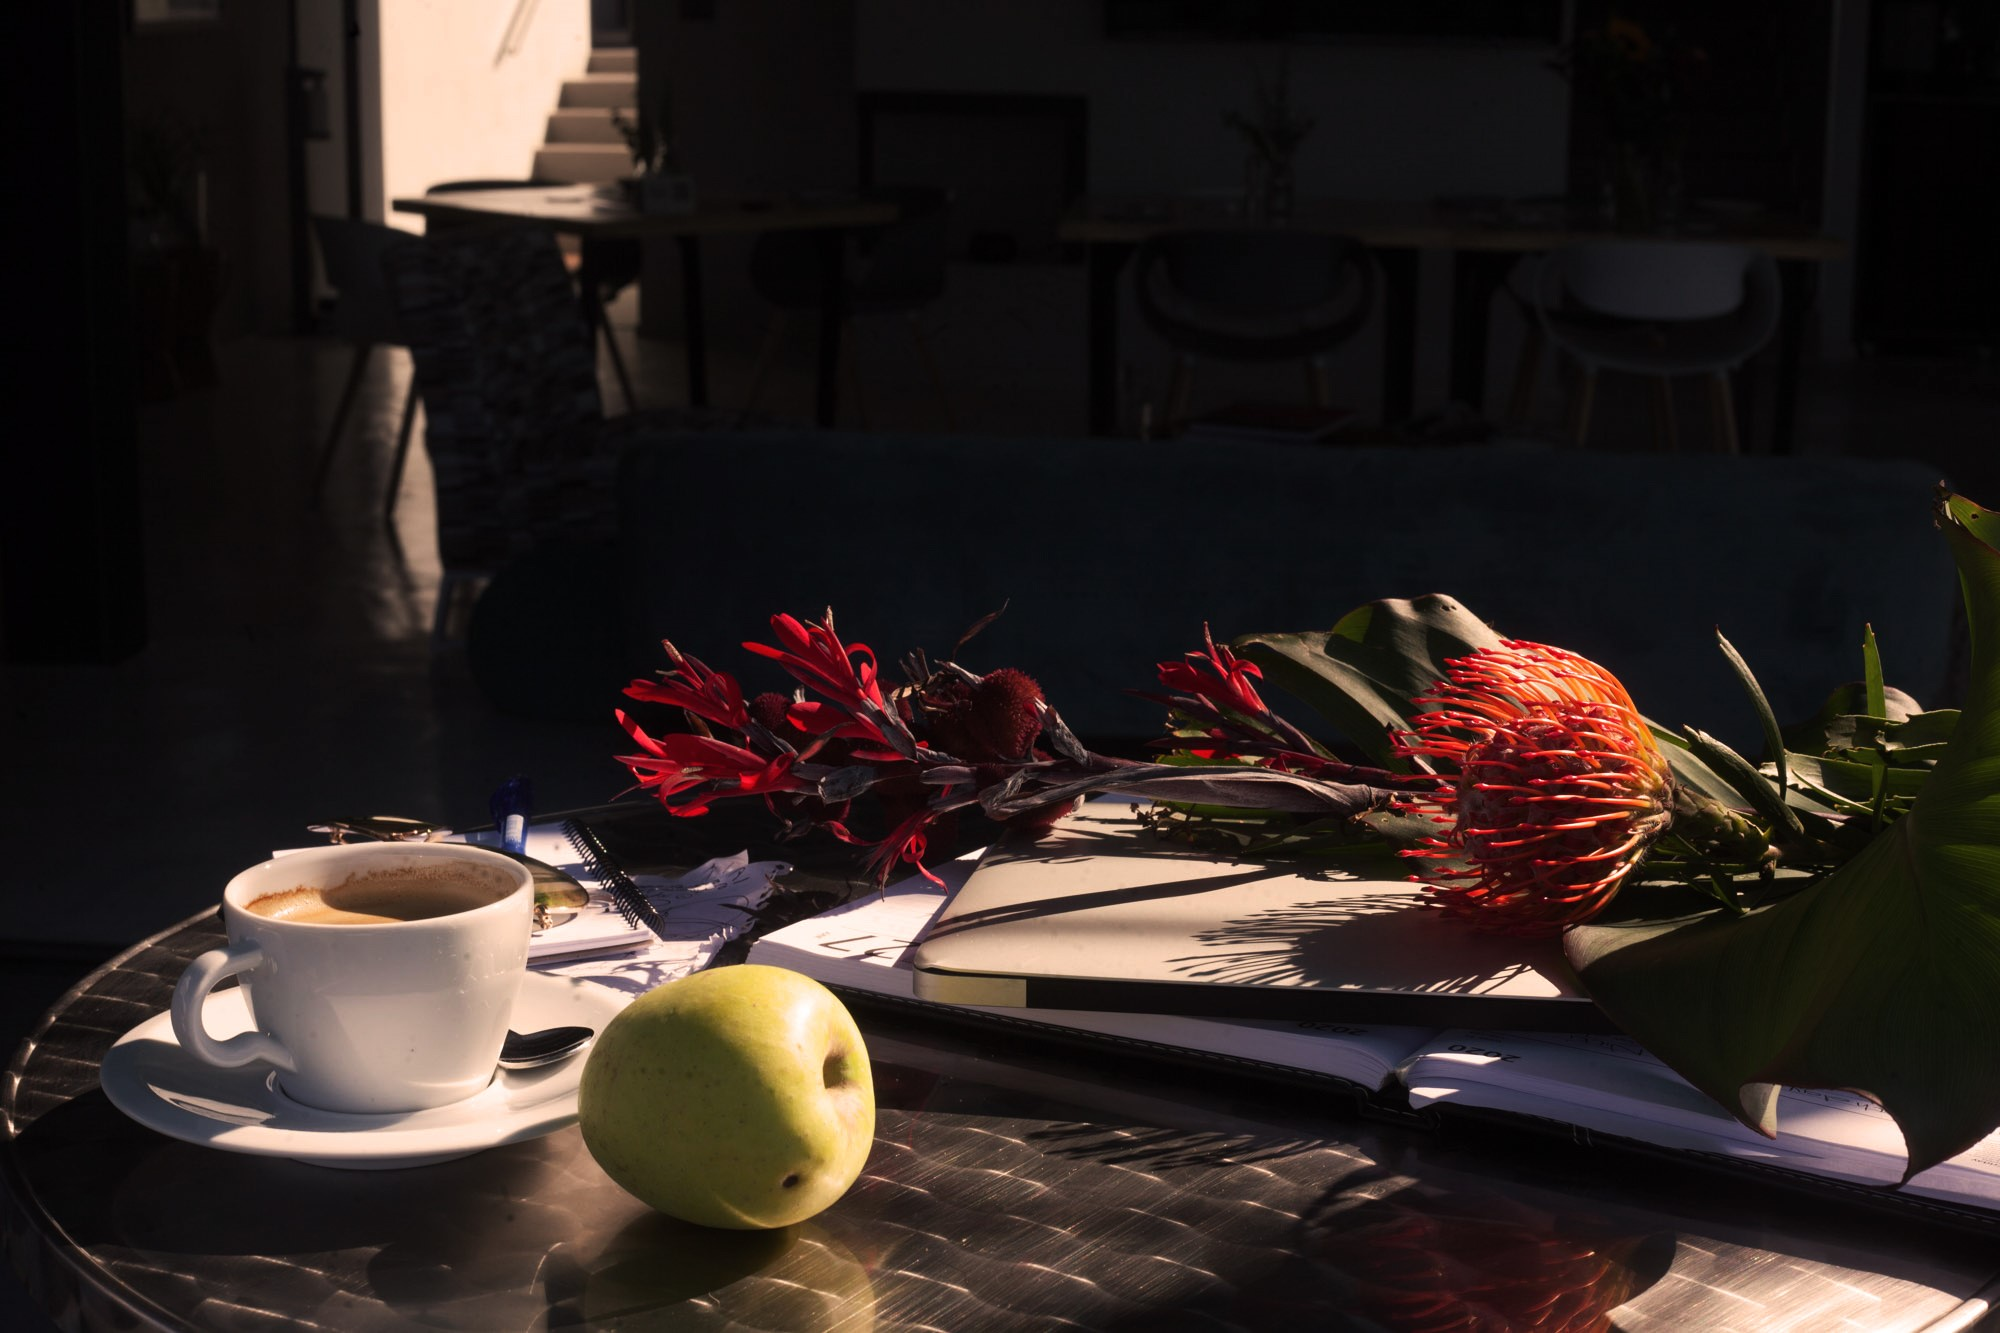 Umhlanga Winter Sun, filled with Fruity aromas, roasted coffee and sweet-salty flavours.